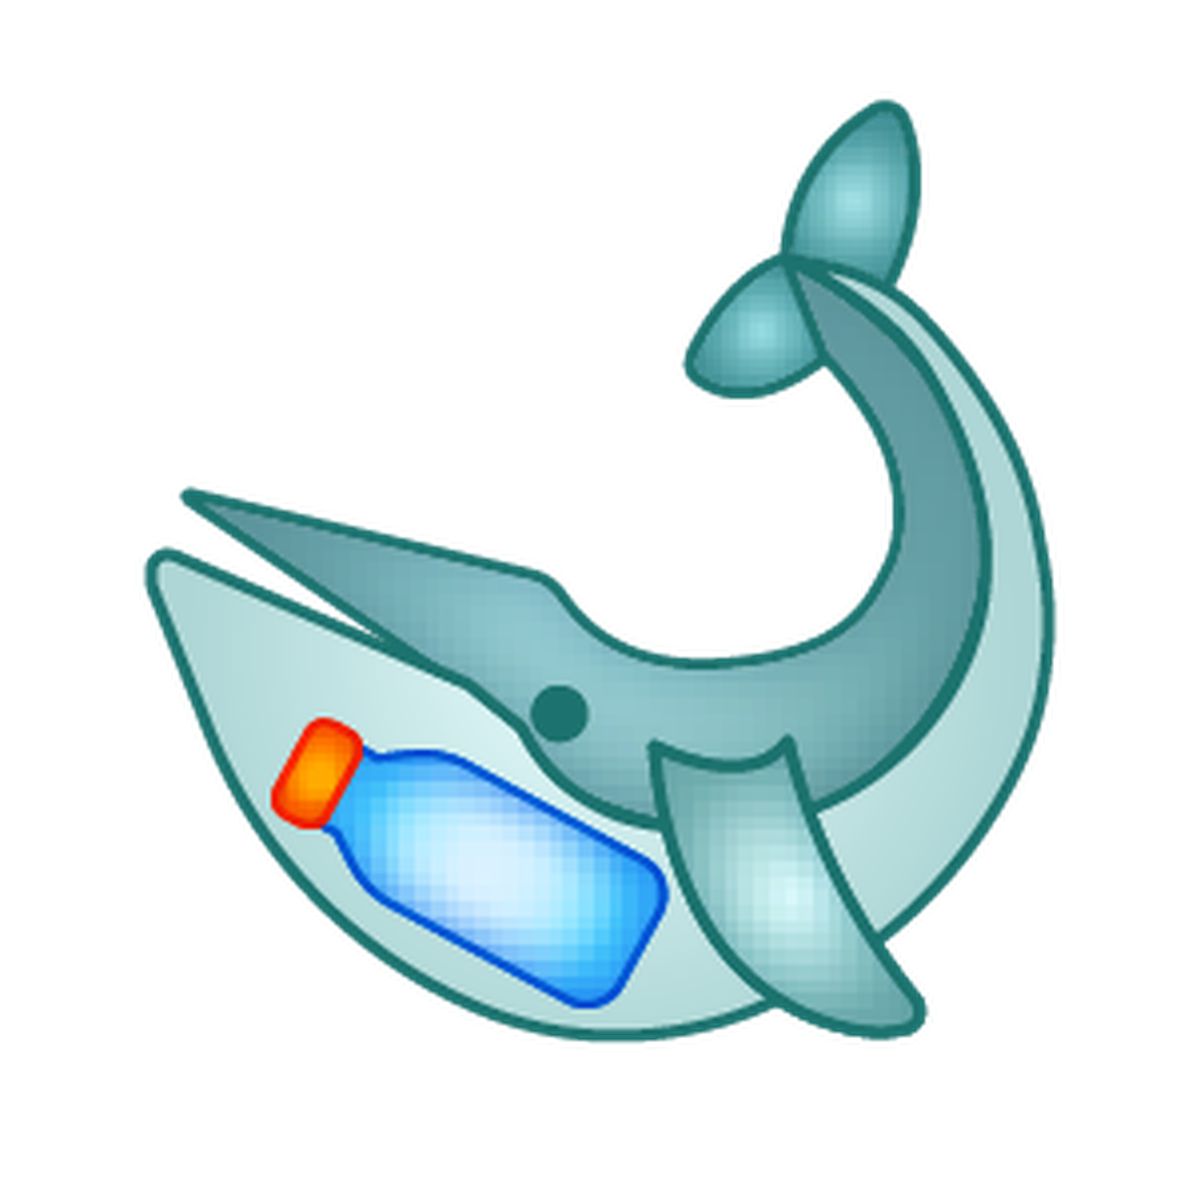 Emoji clipart whale. What kind of do